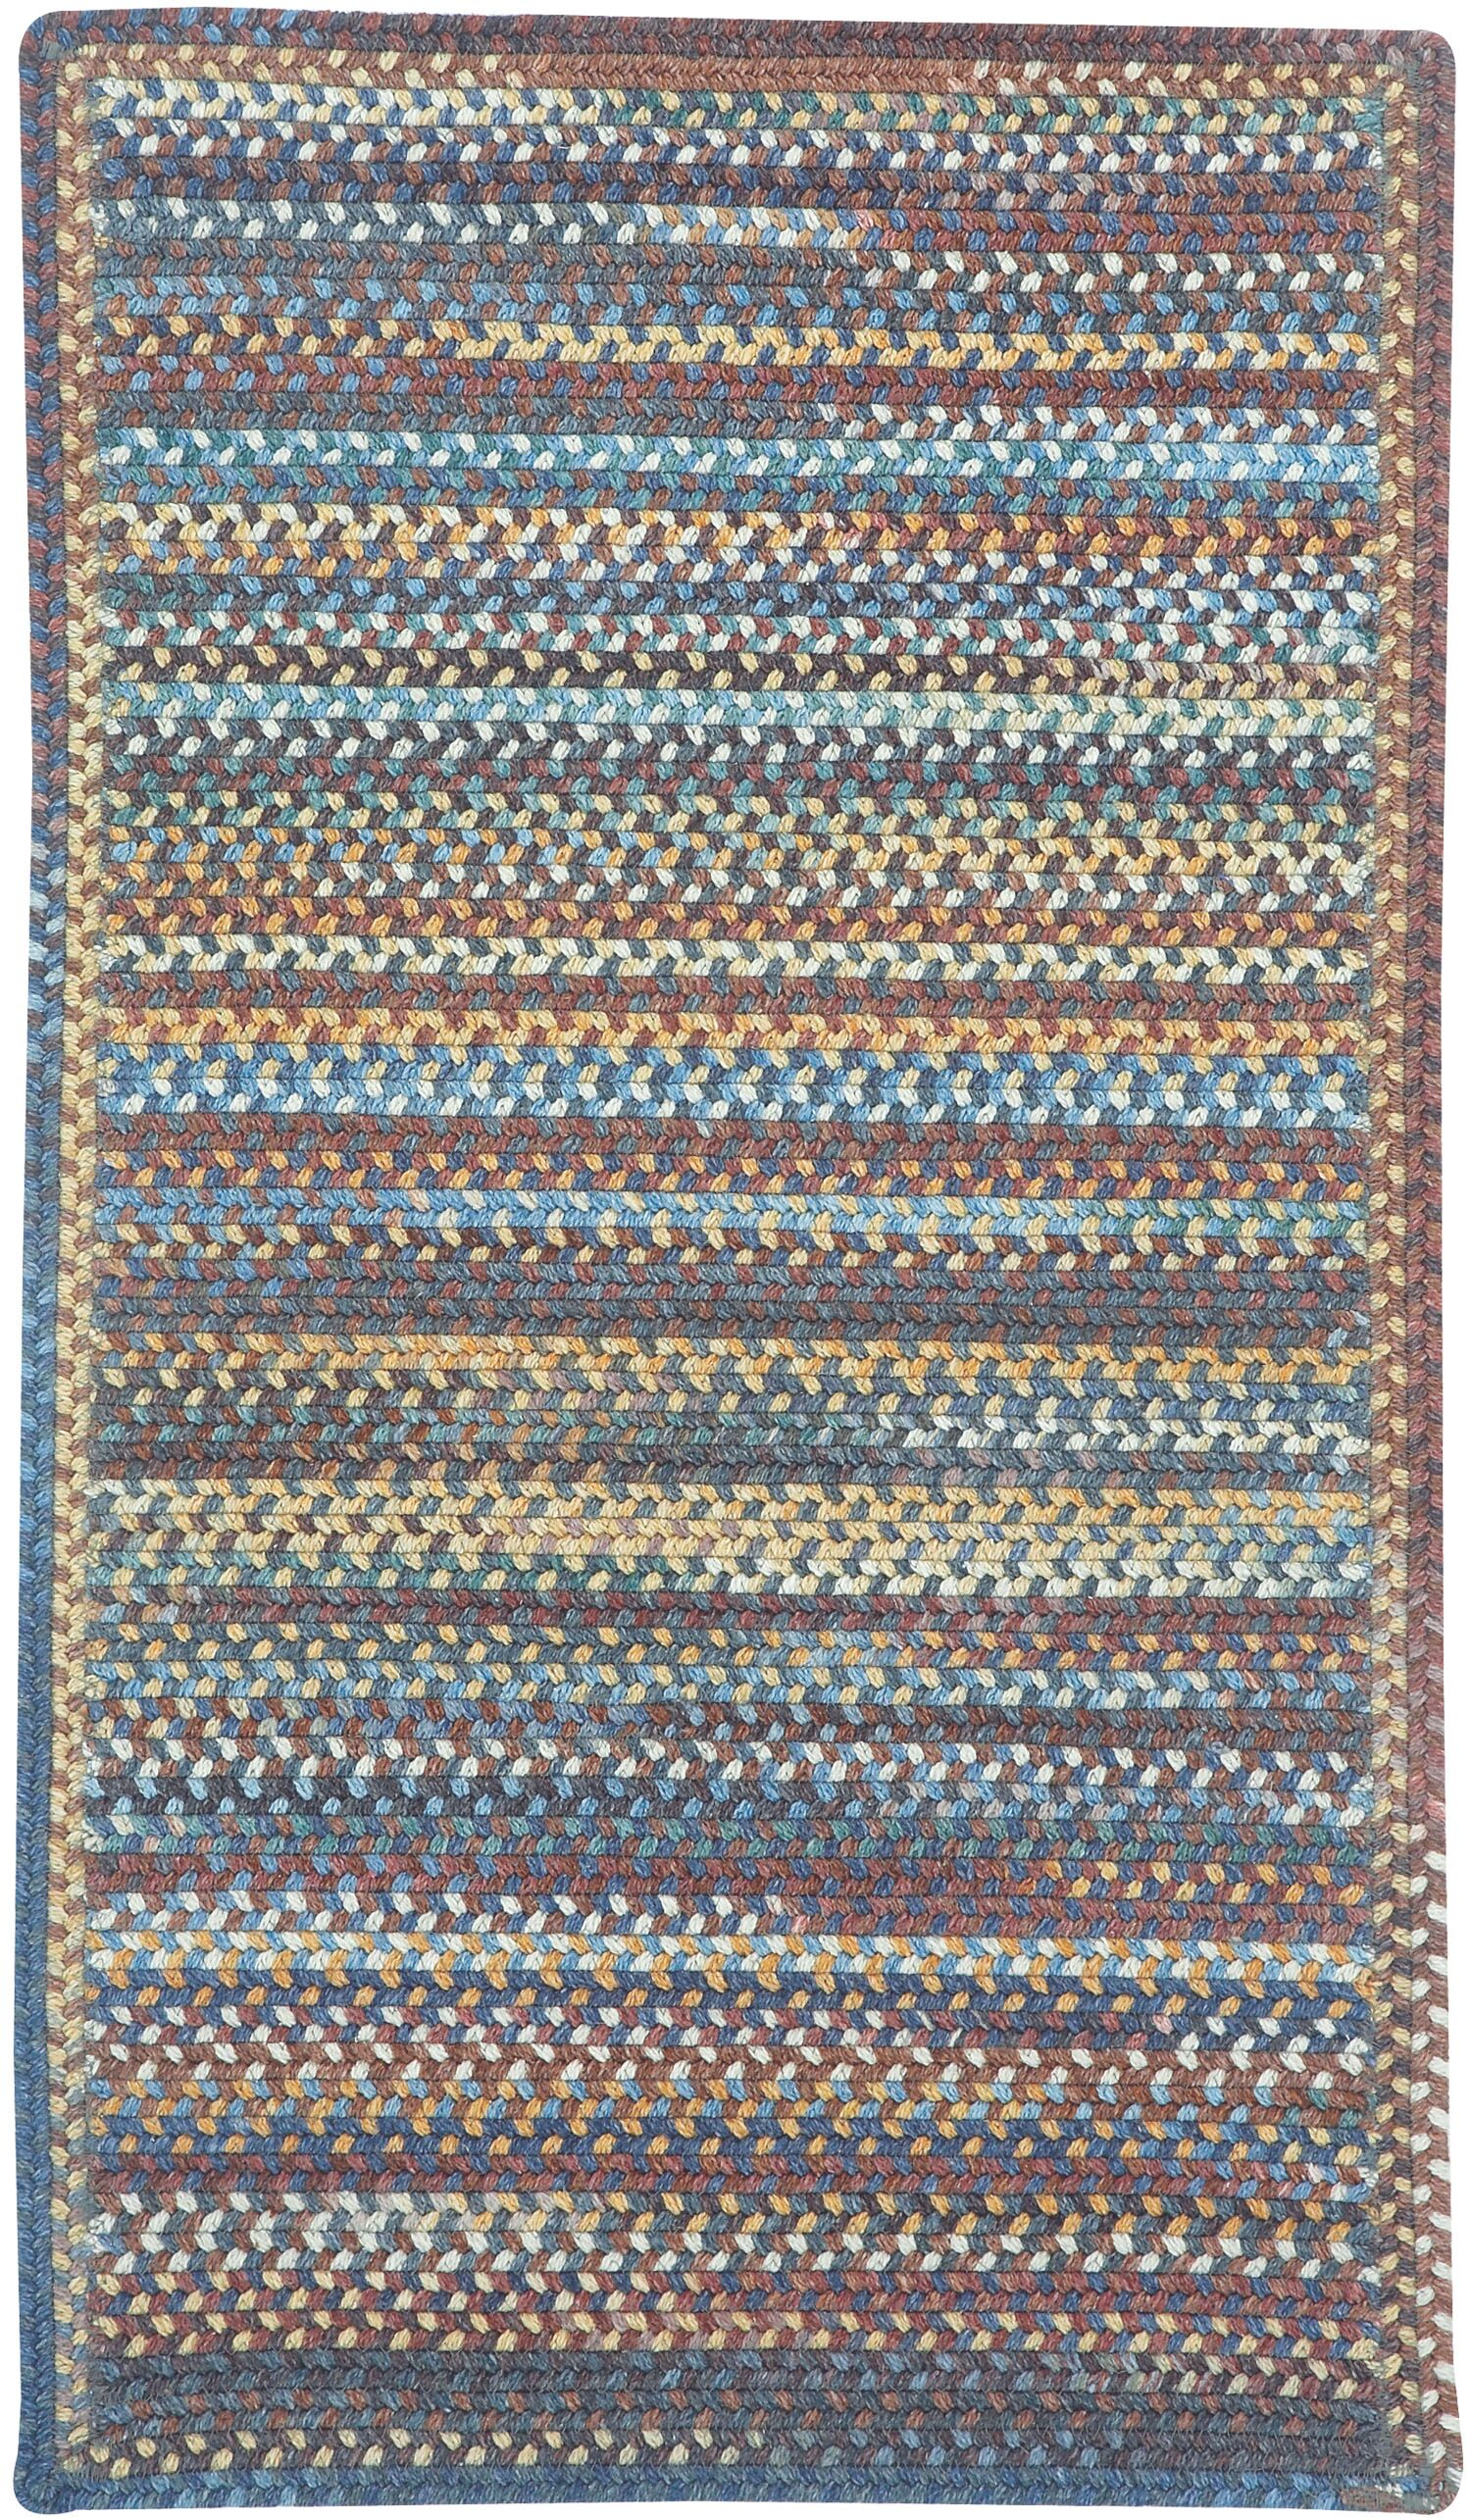 Phoebe Medium Blue Multi Rug Rug Size: Rectangle Oblong 2' x 4'